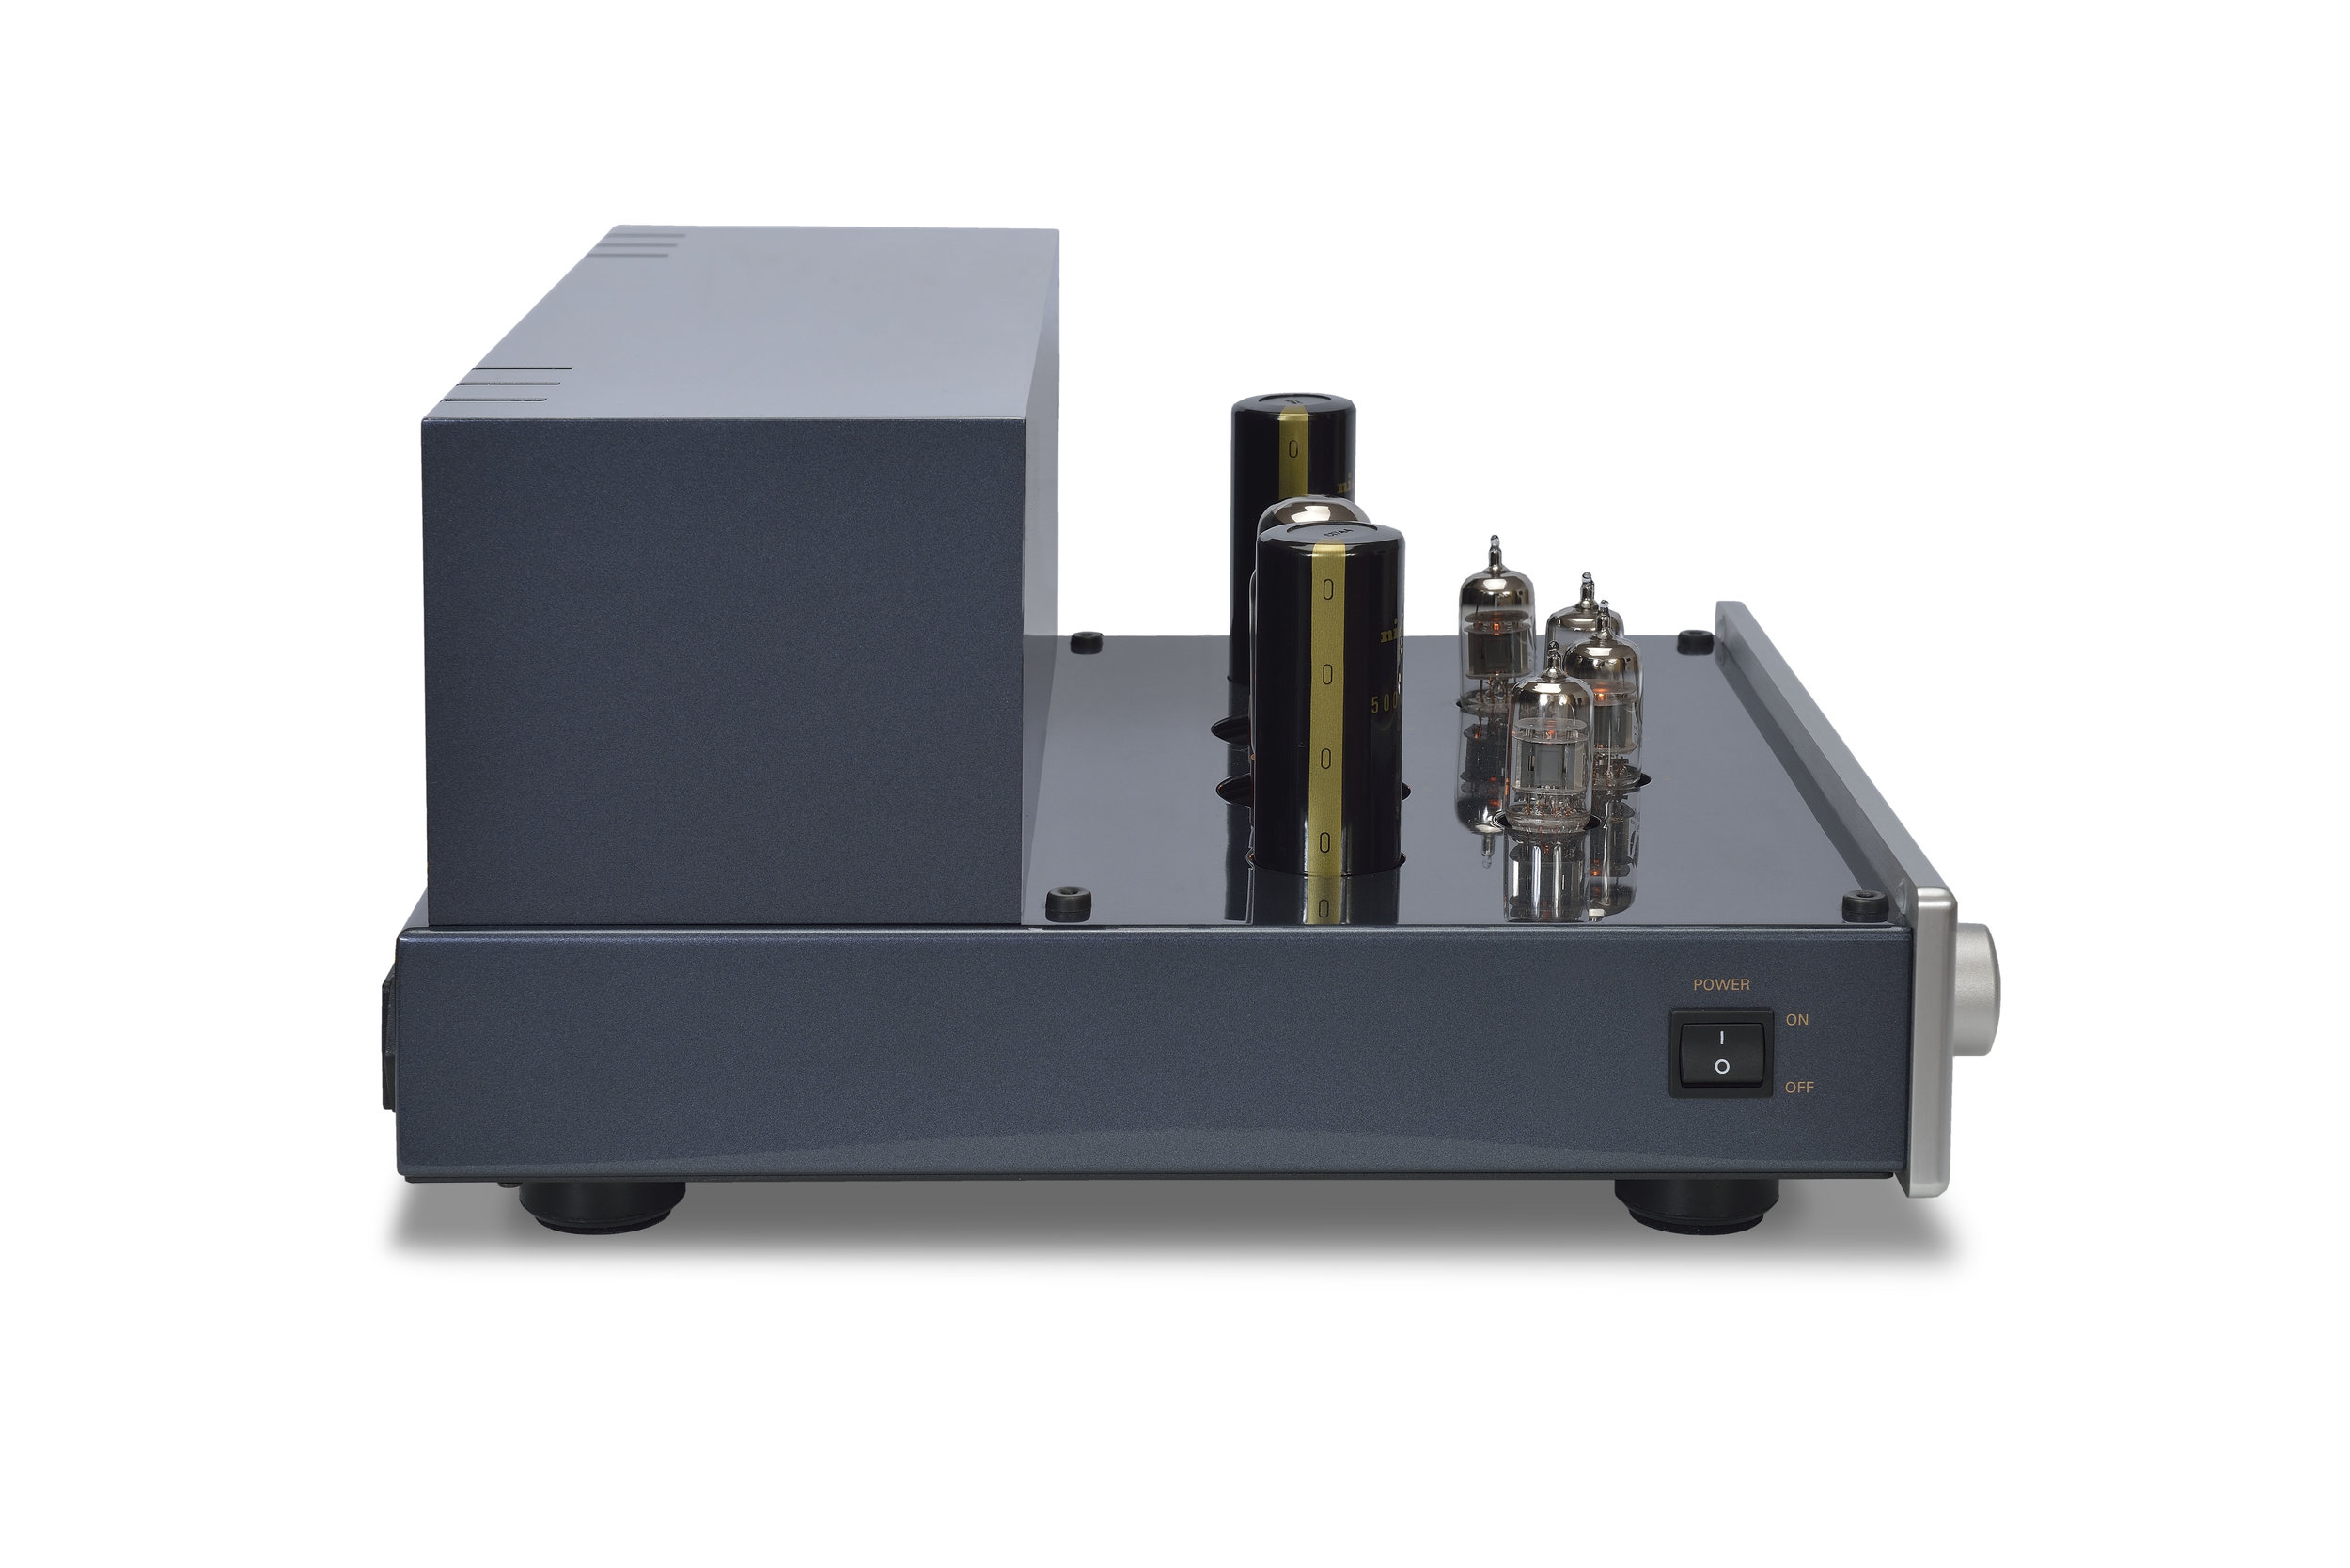 086b - PrimaLuna Evo 200 Tube Preamplifier - silver - quarter turned - without cage - white background.jpg